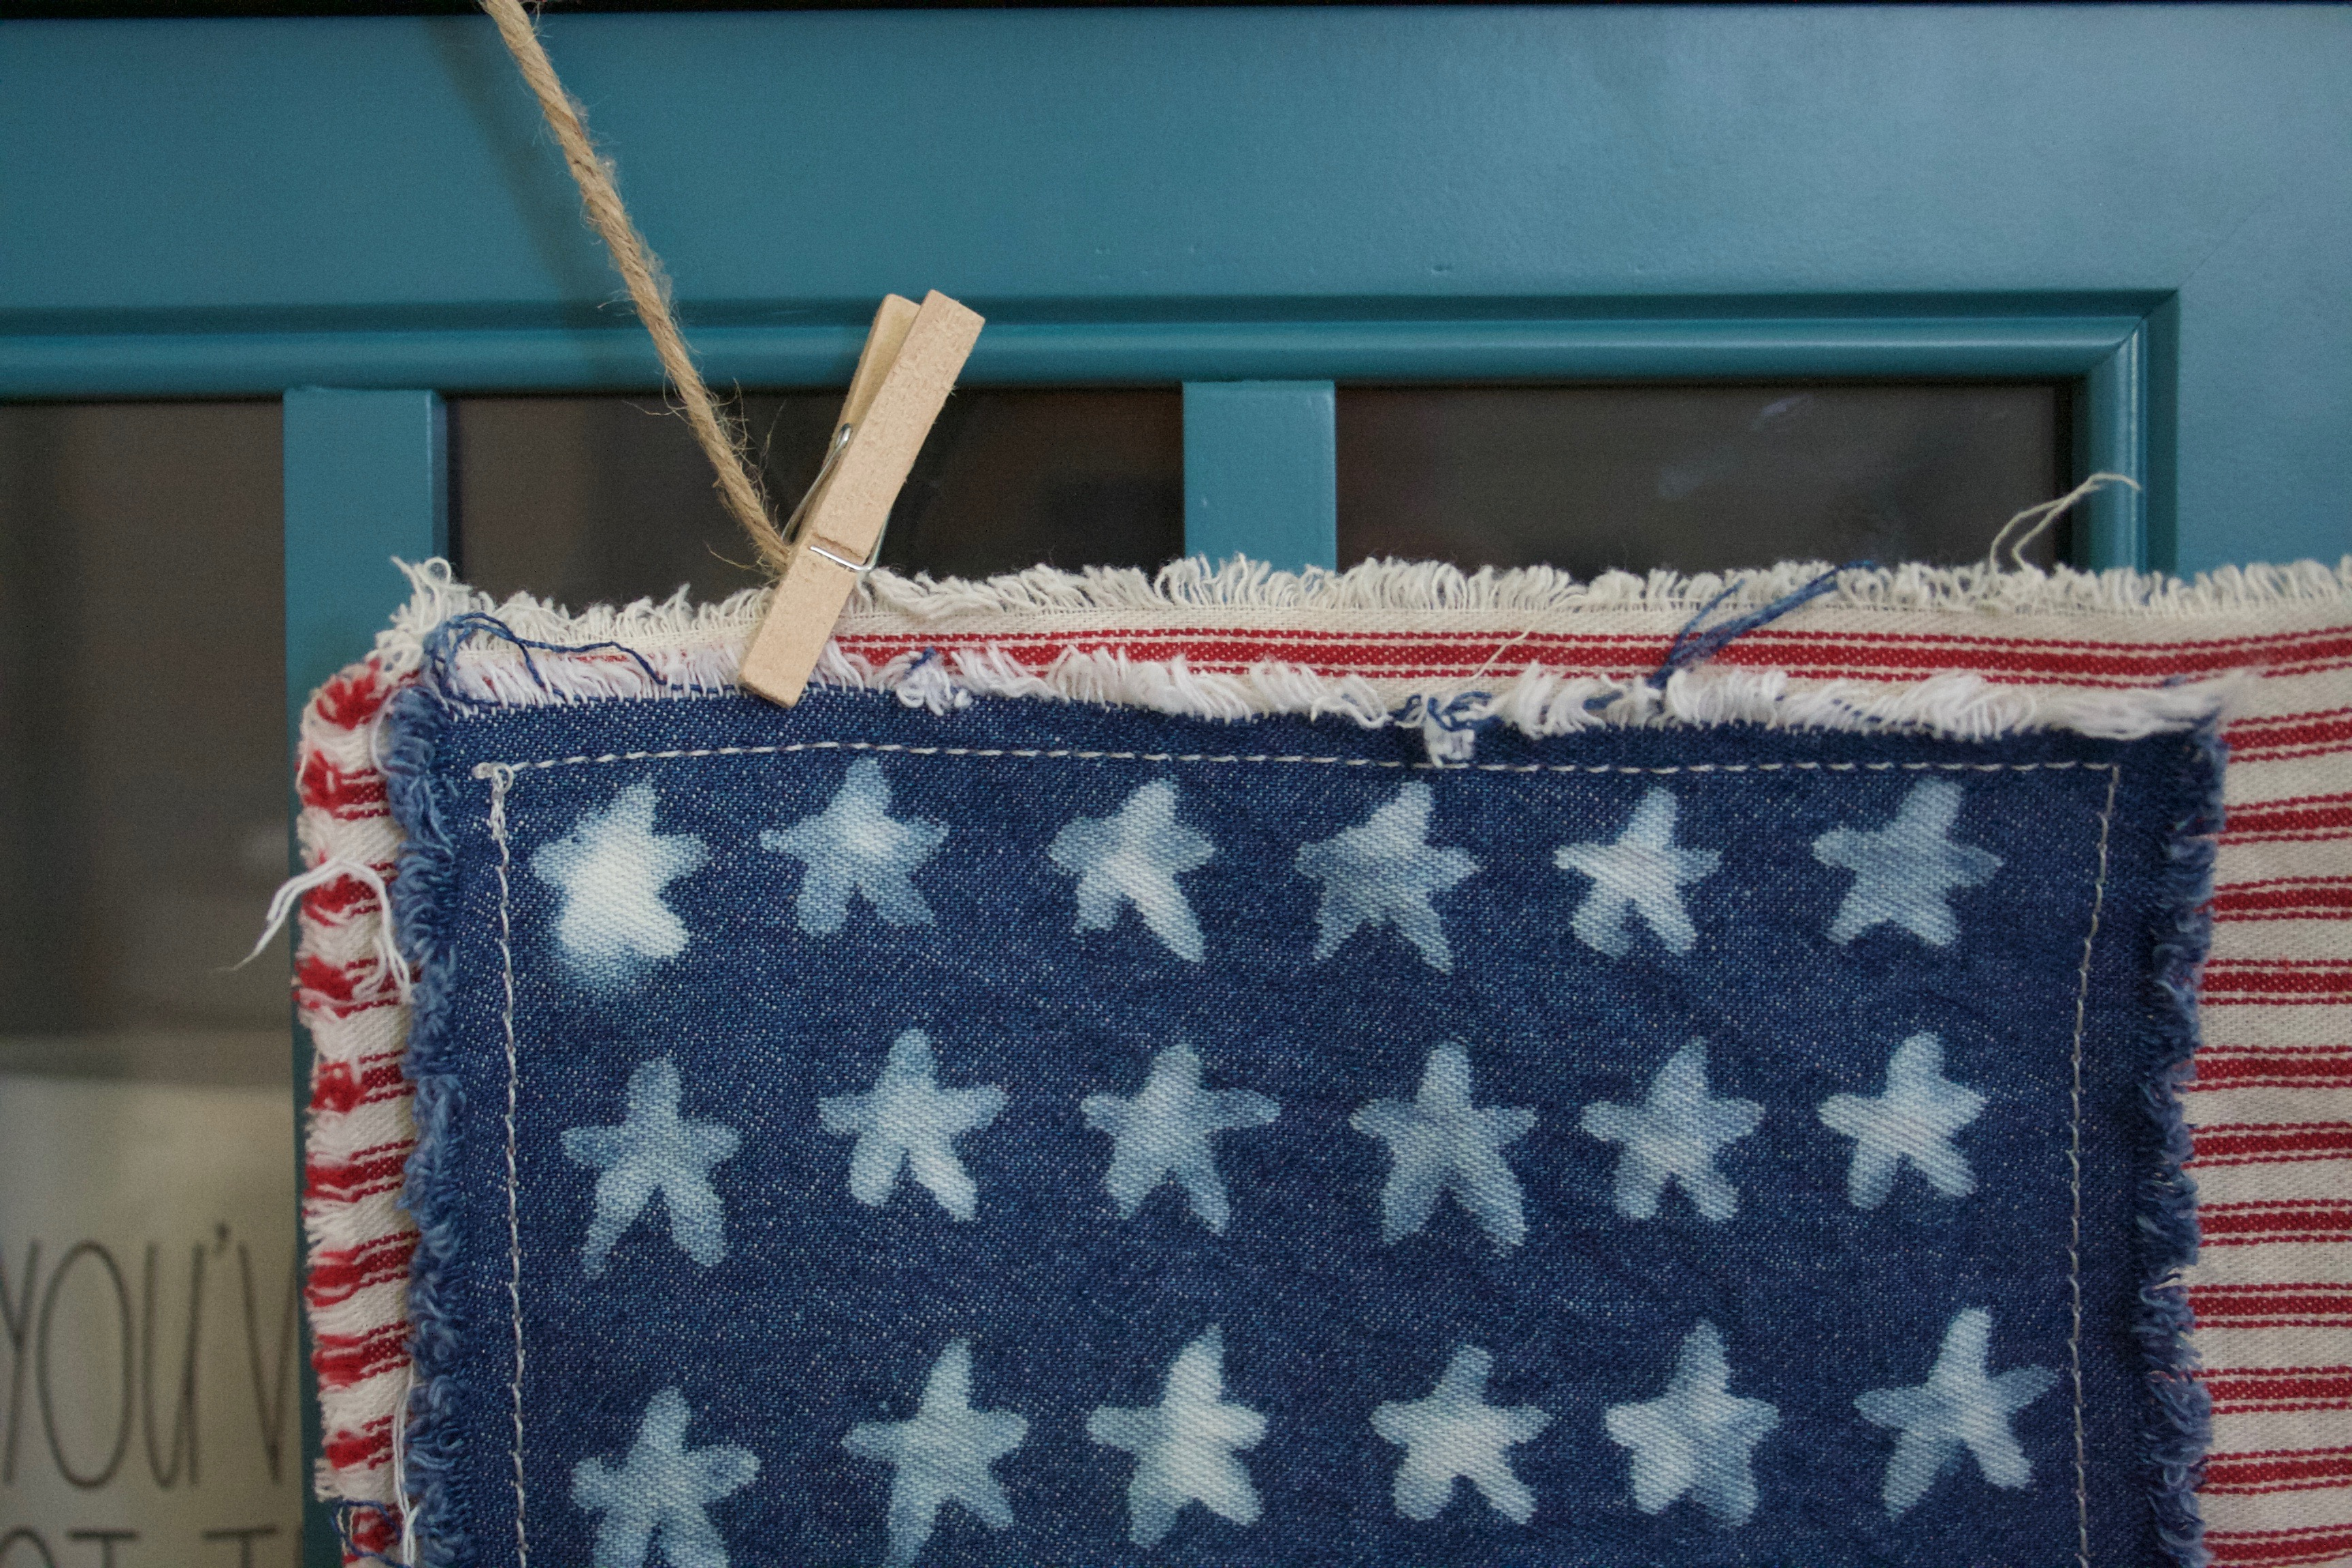 DIY Patriotic & Vintage Inspired American Flag for Independence Day